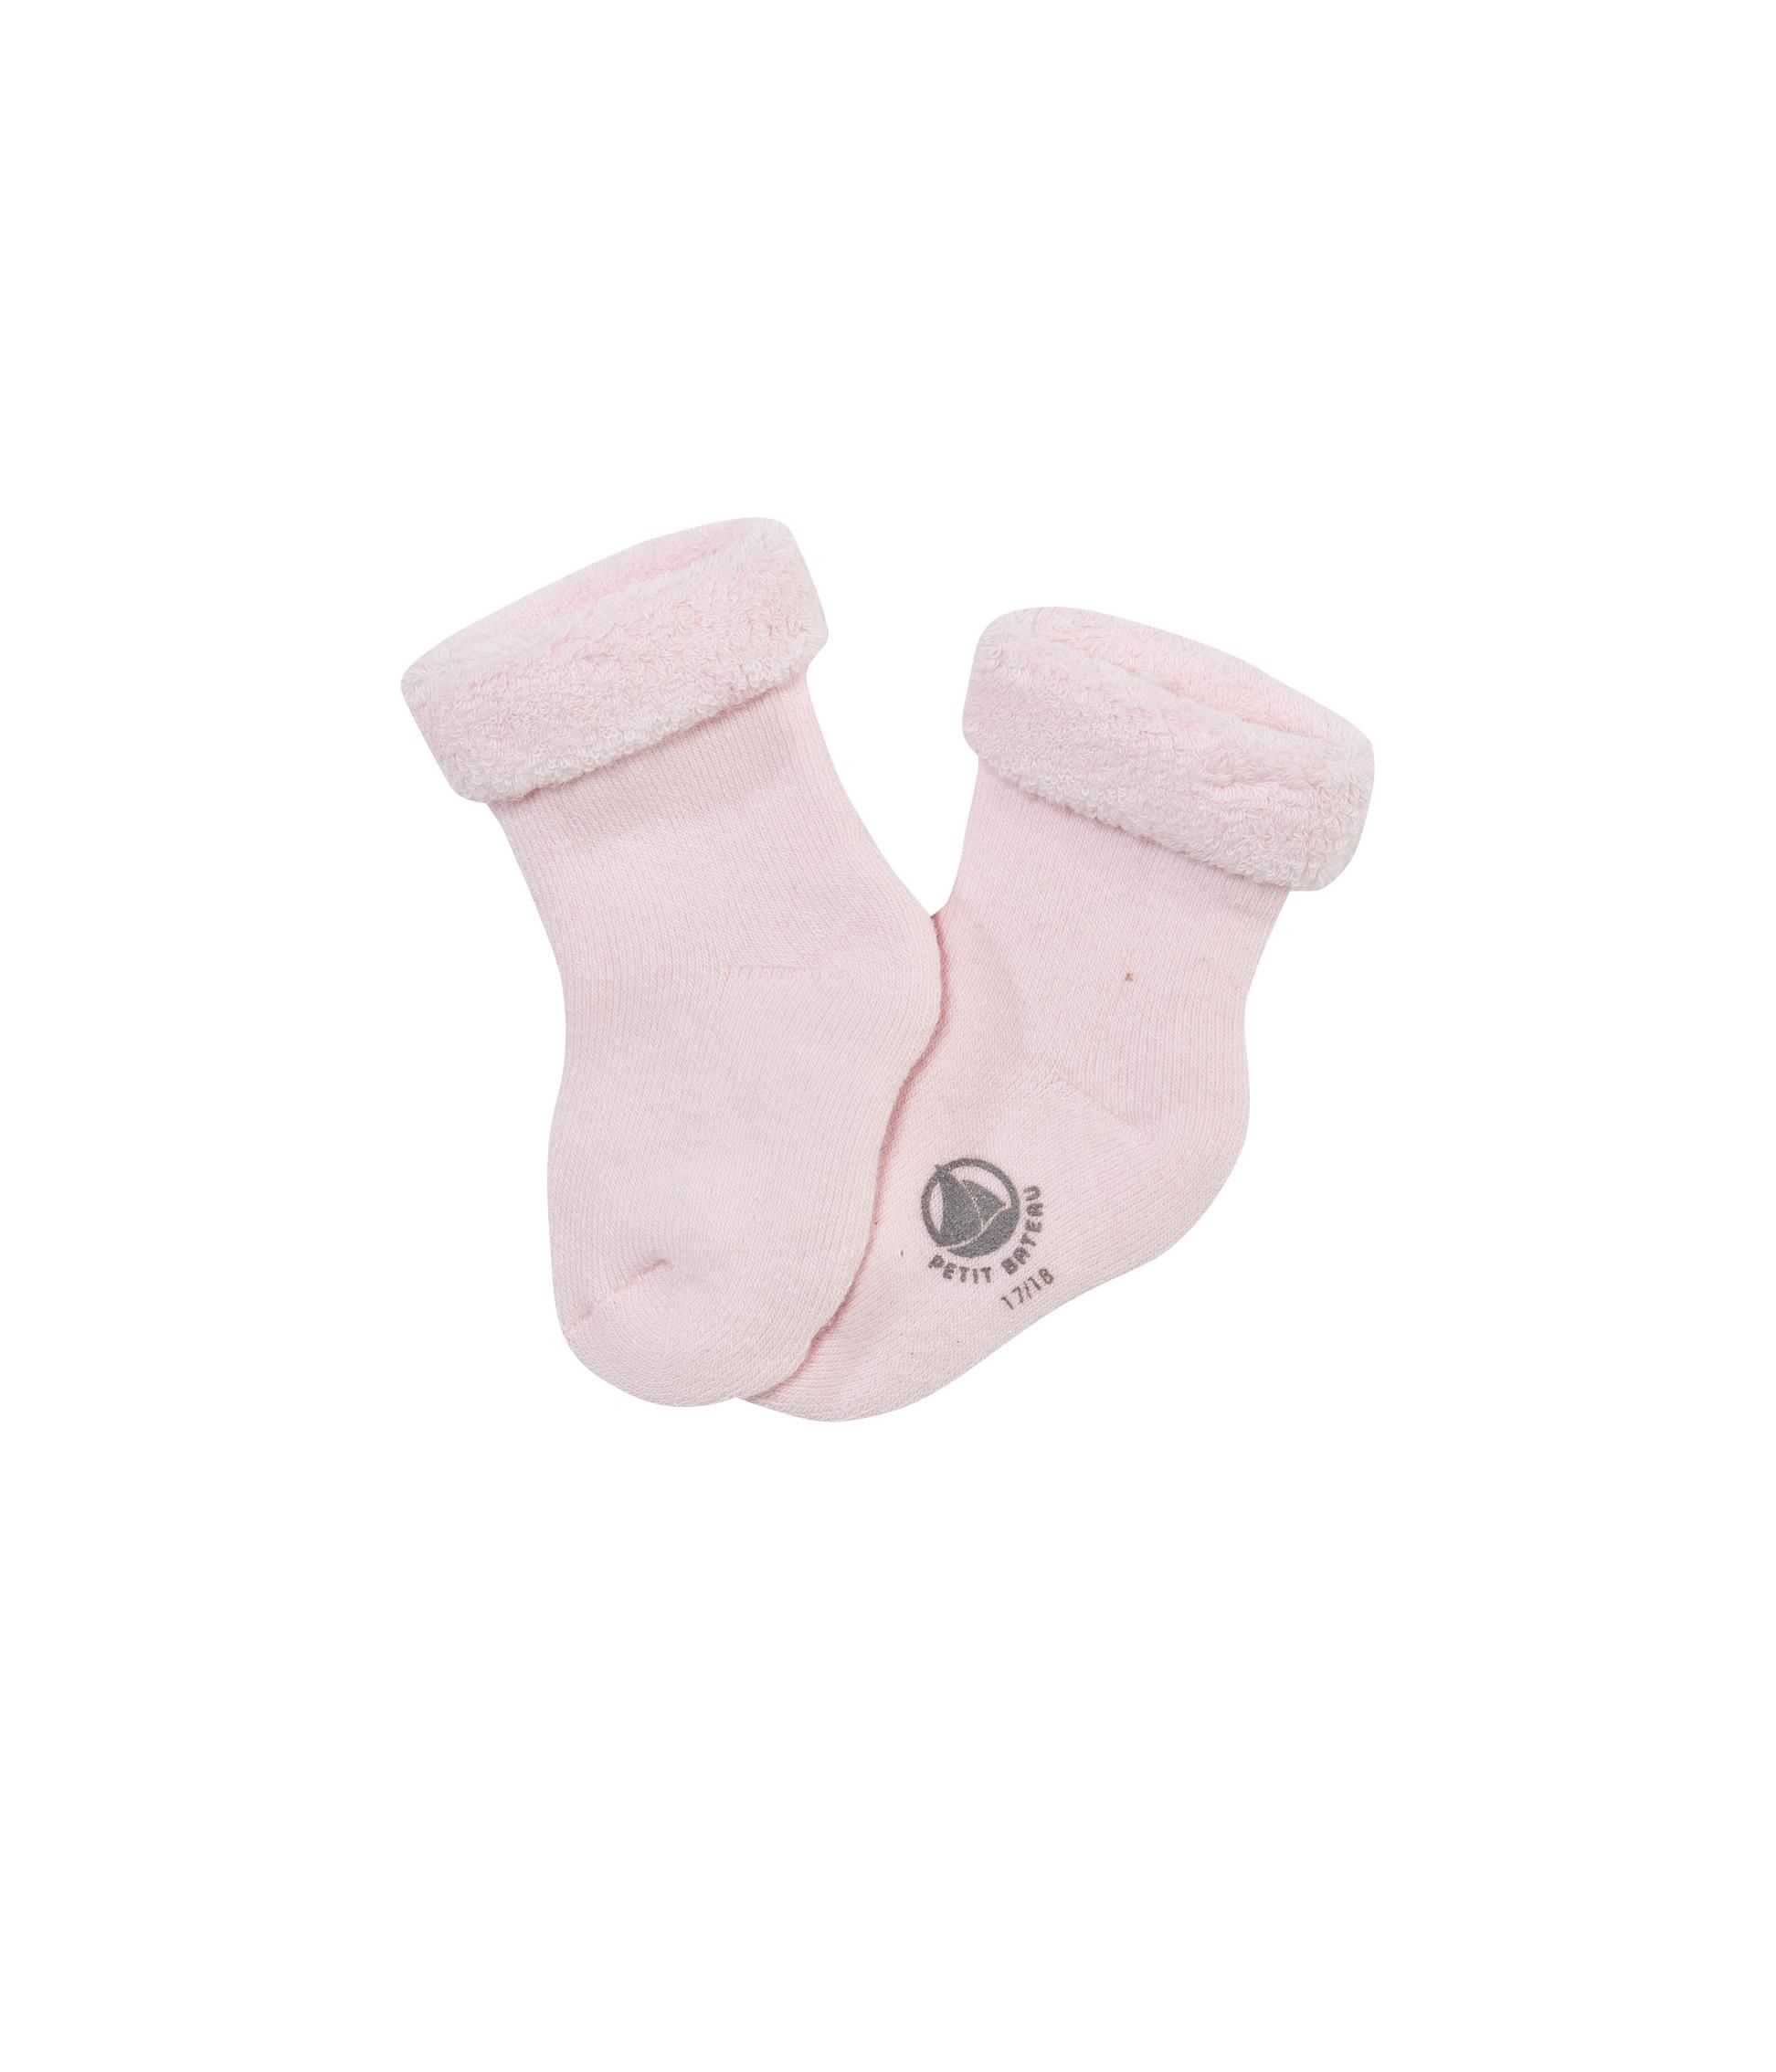 Baby jersey towelling socks with turn-ups